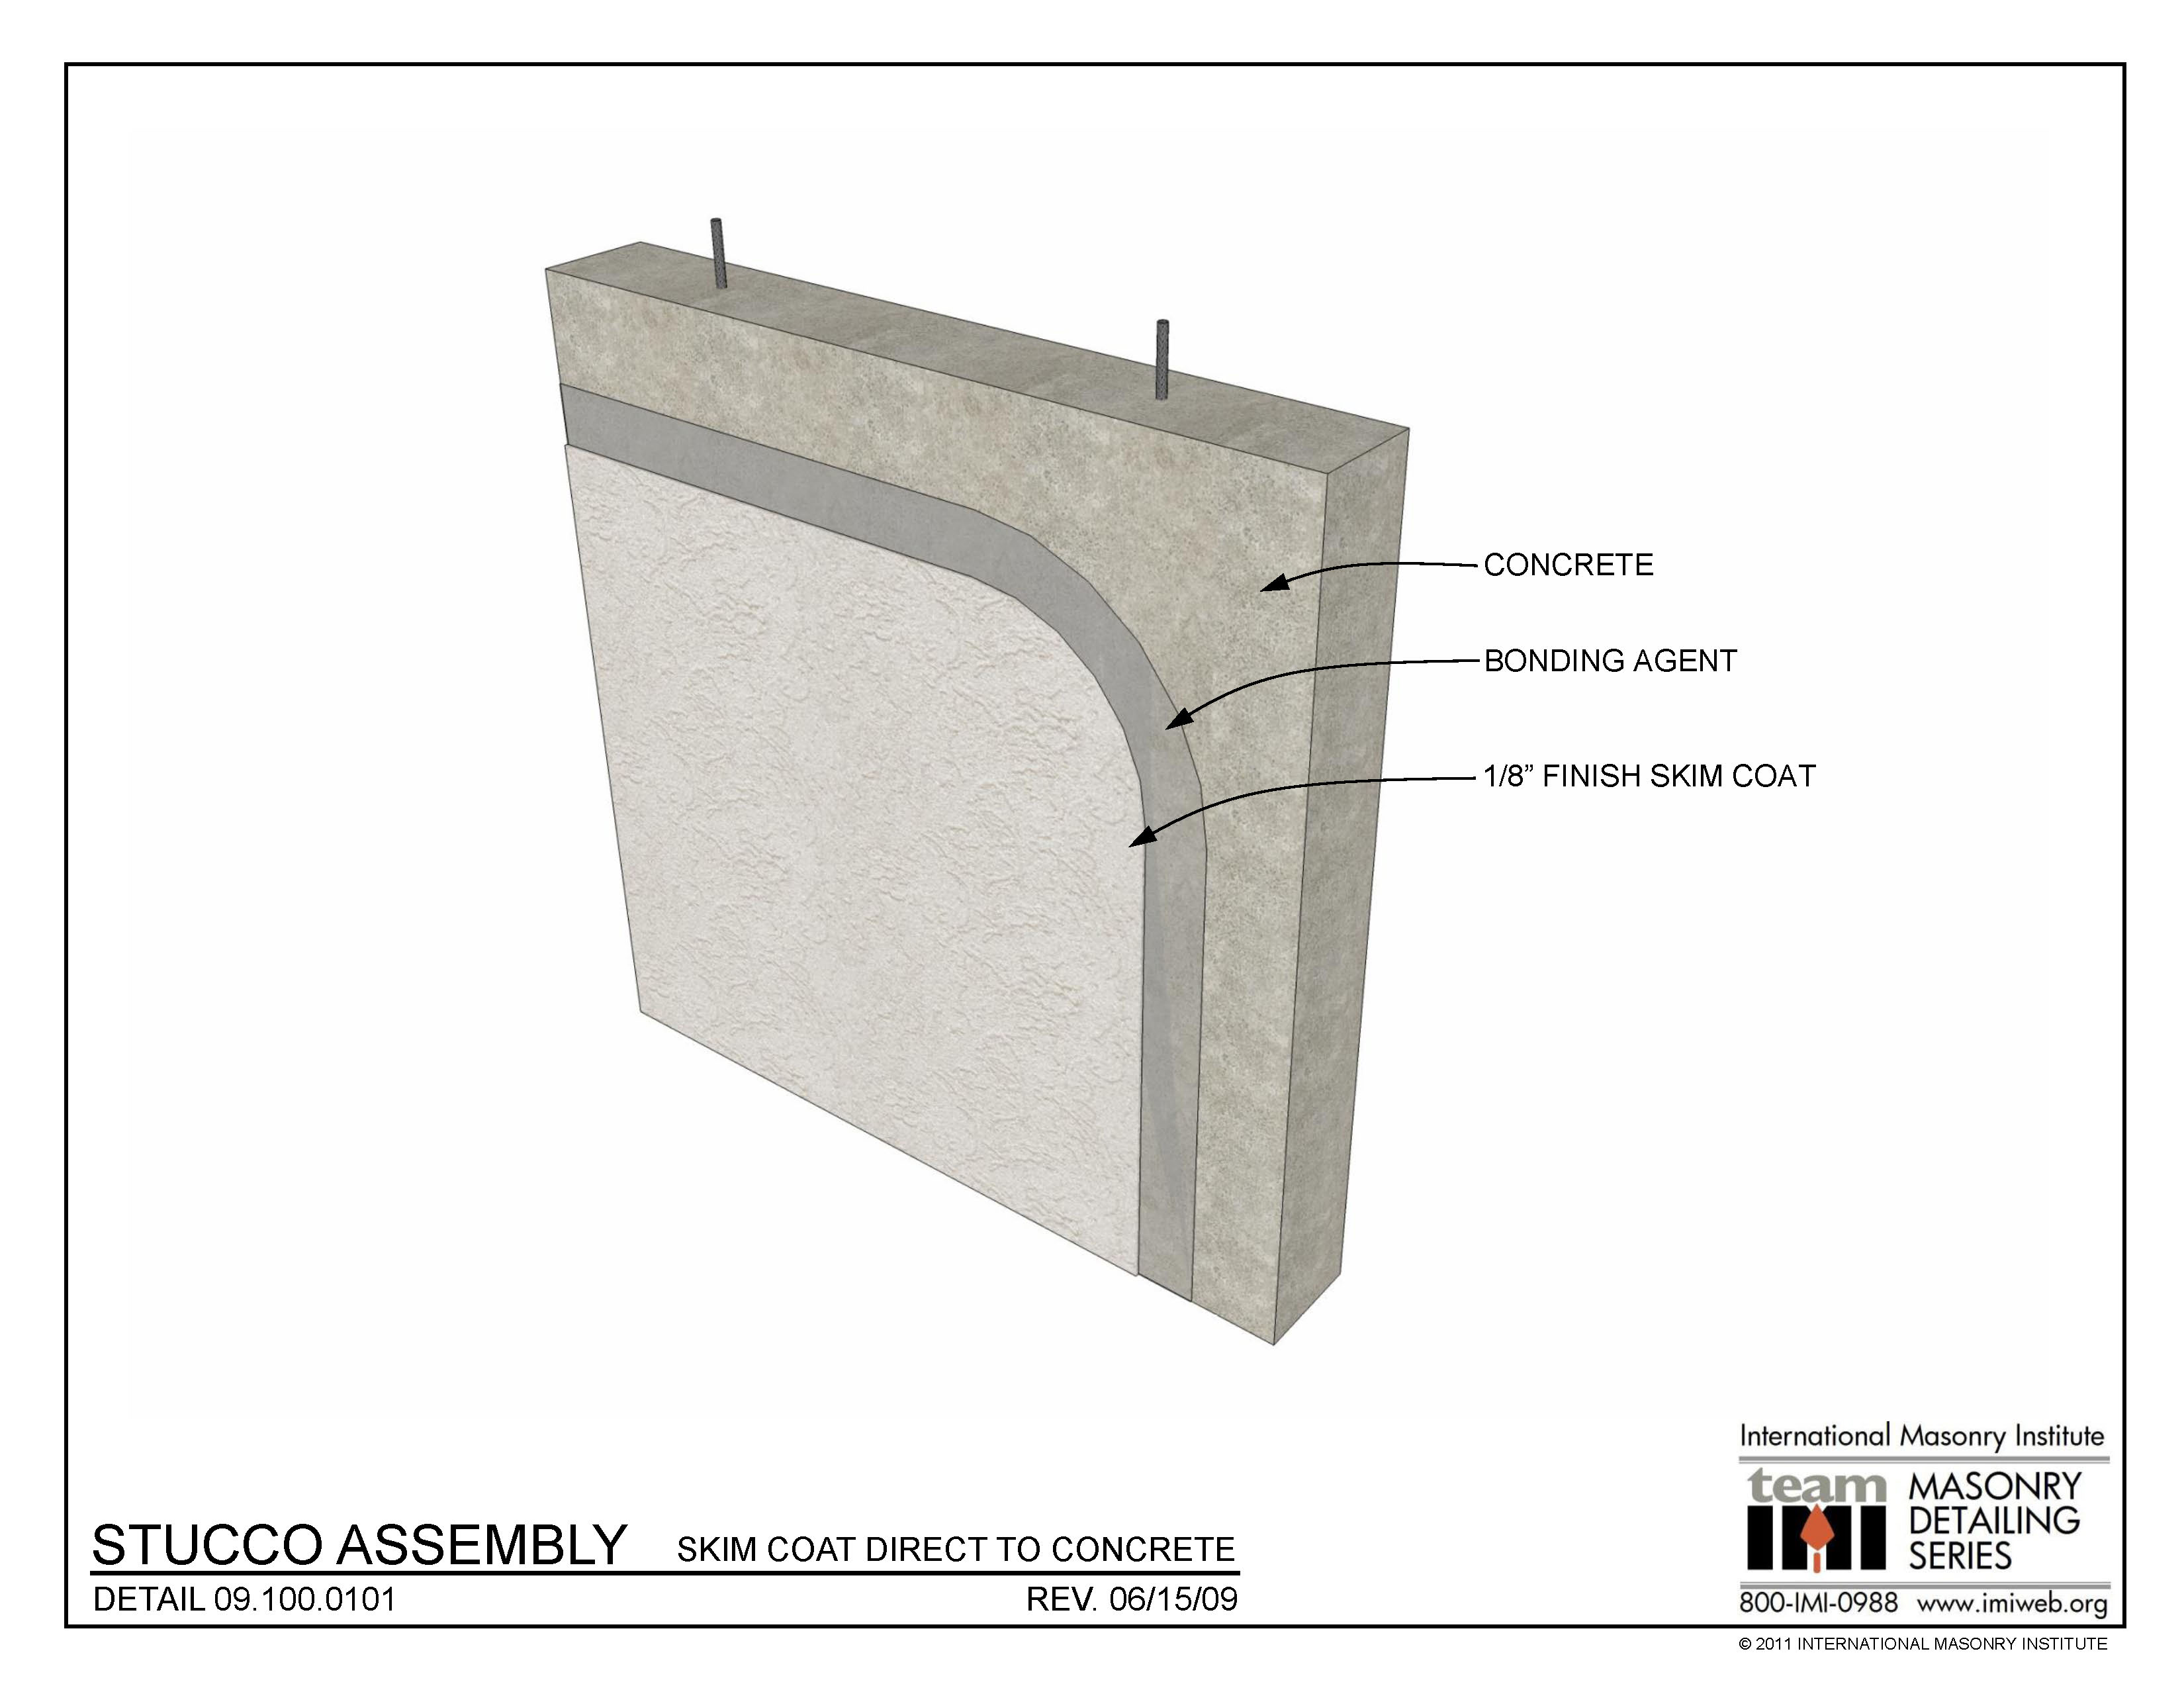 09 100 0101 Stucco Assembly Skim Coat Direct To